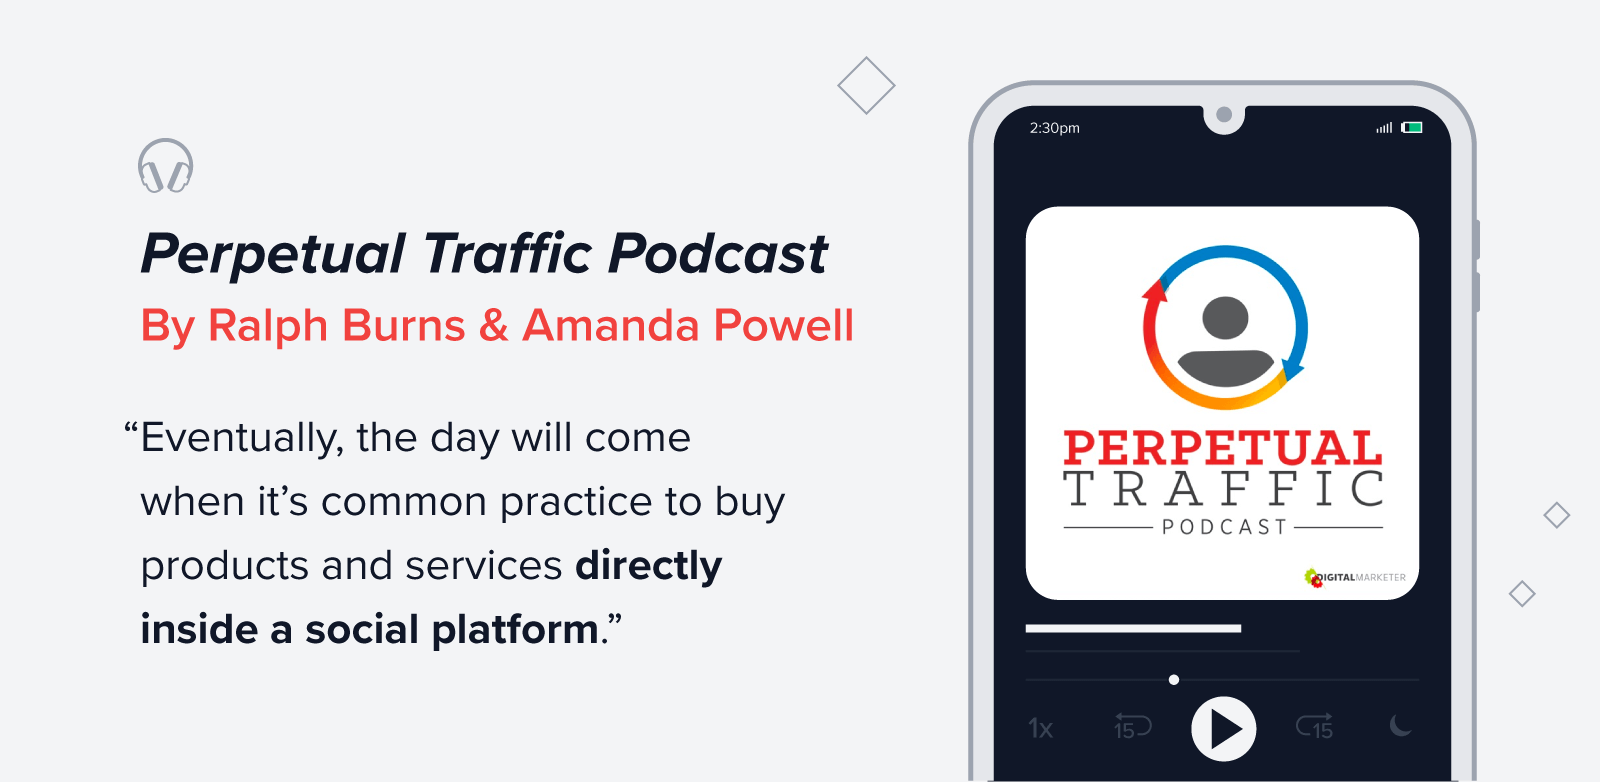 Perpetual traffic podcast quote